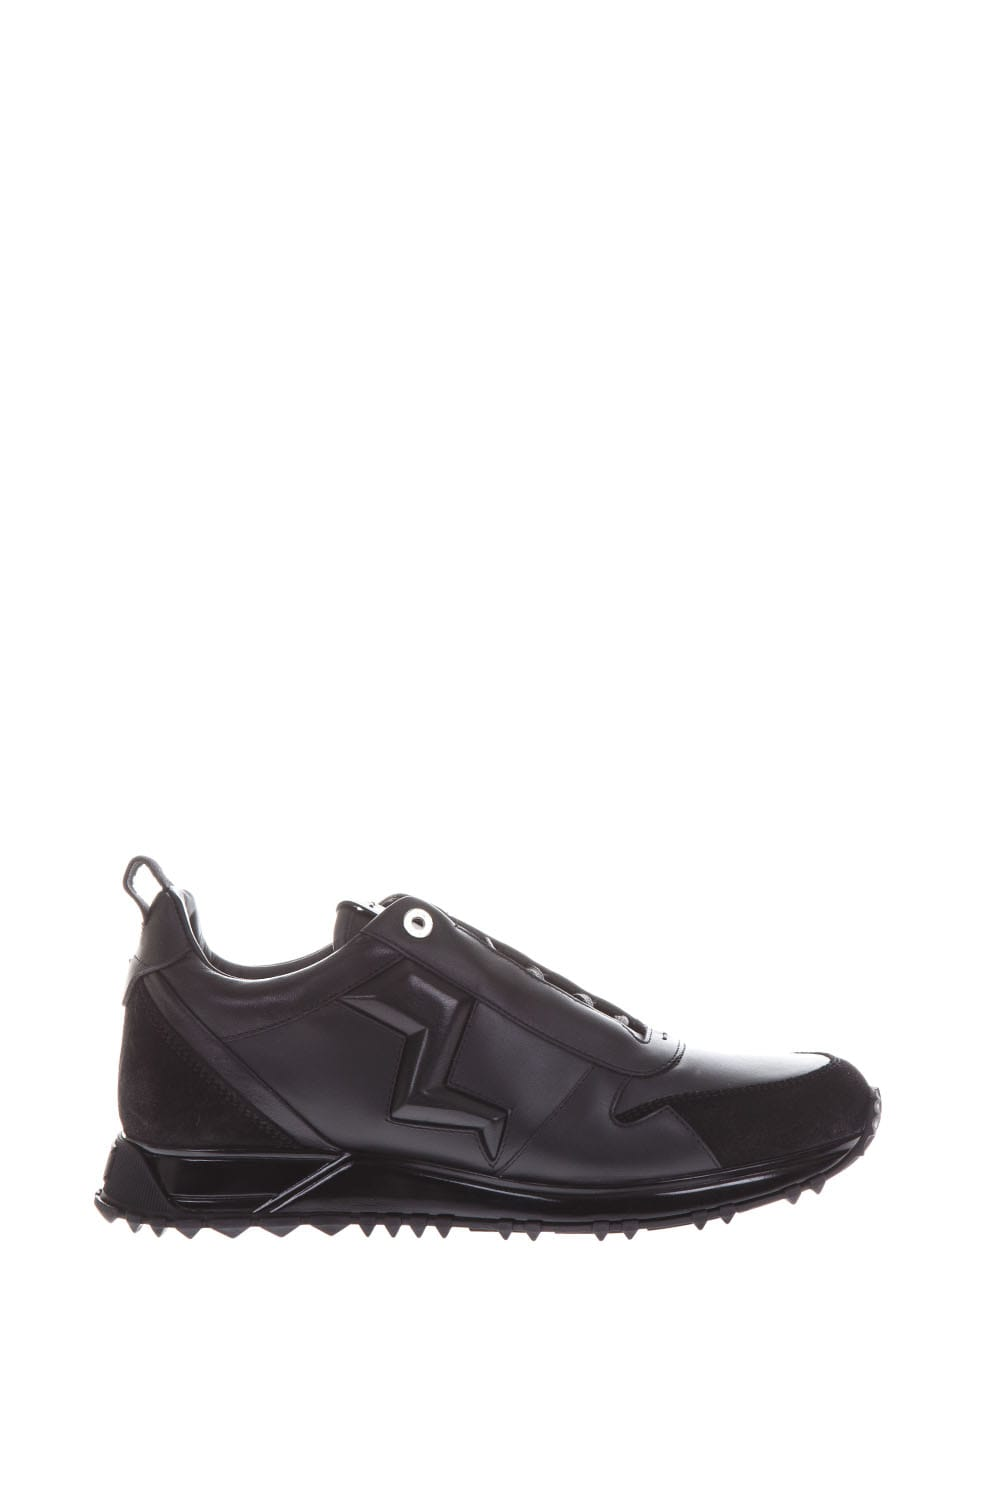 Fendi Thunder Leather Sneakers